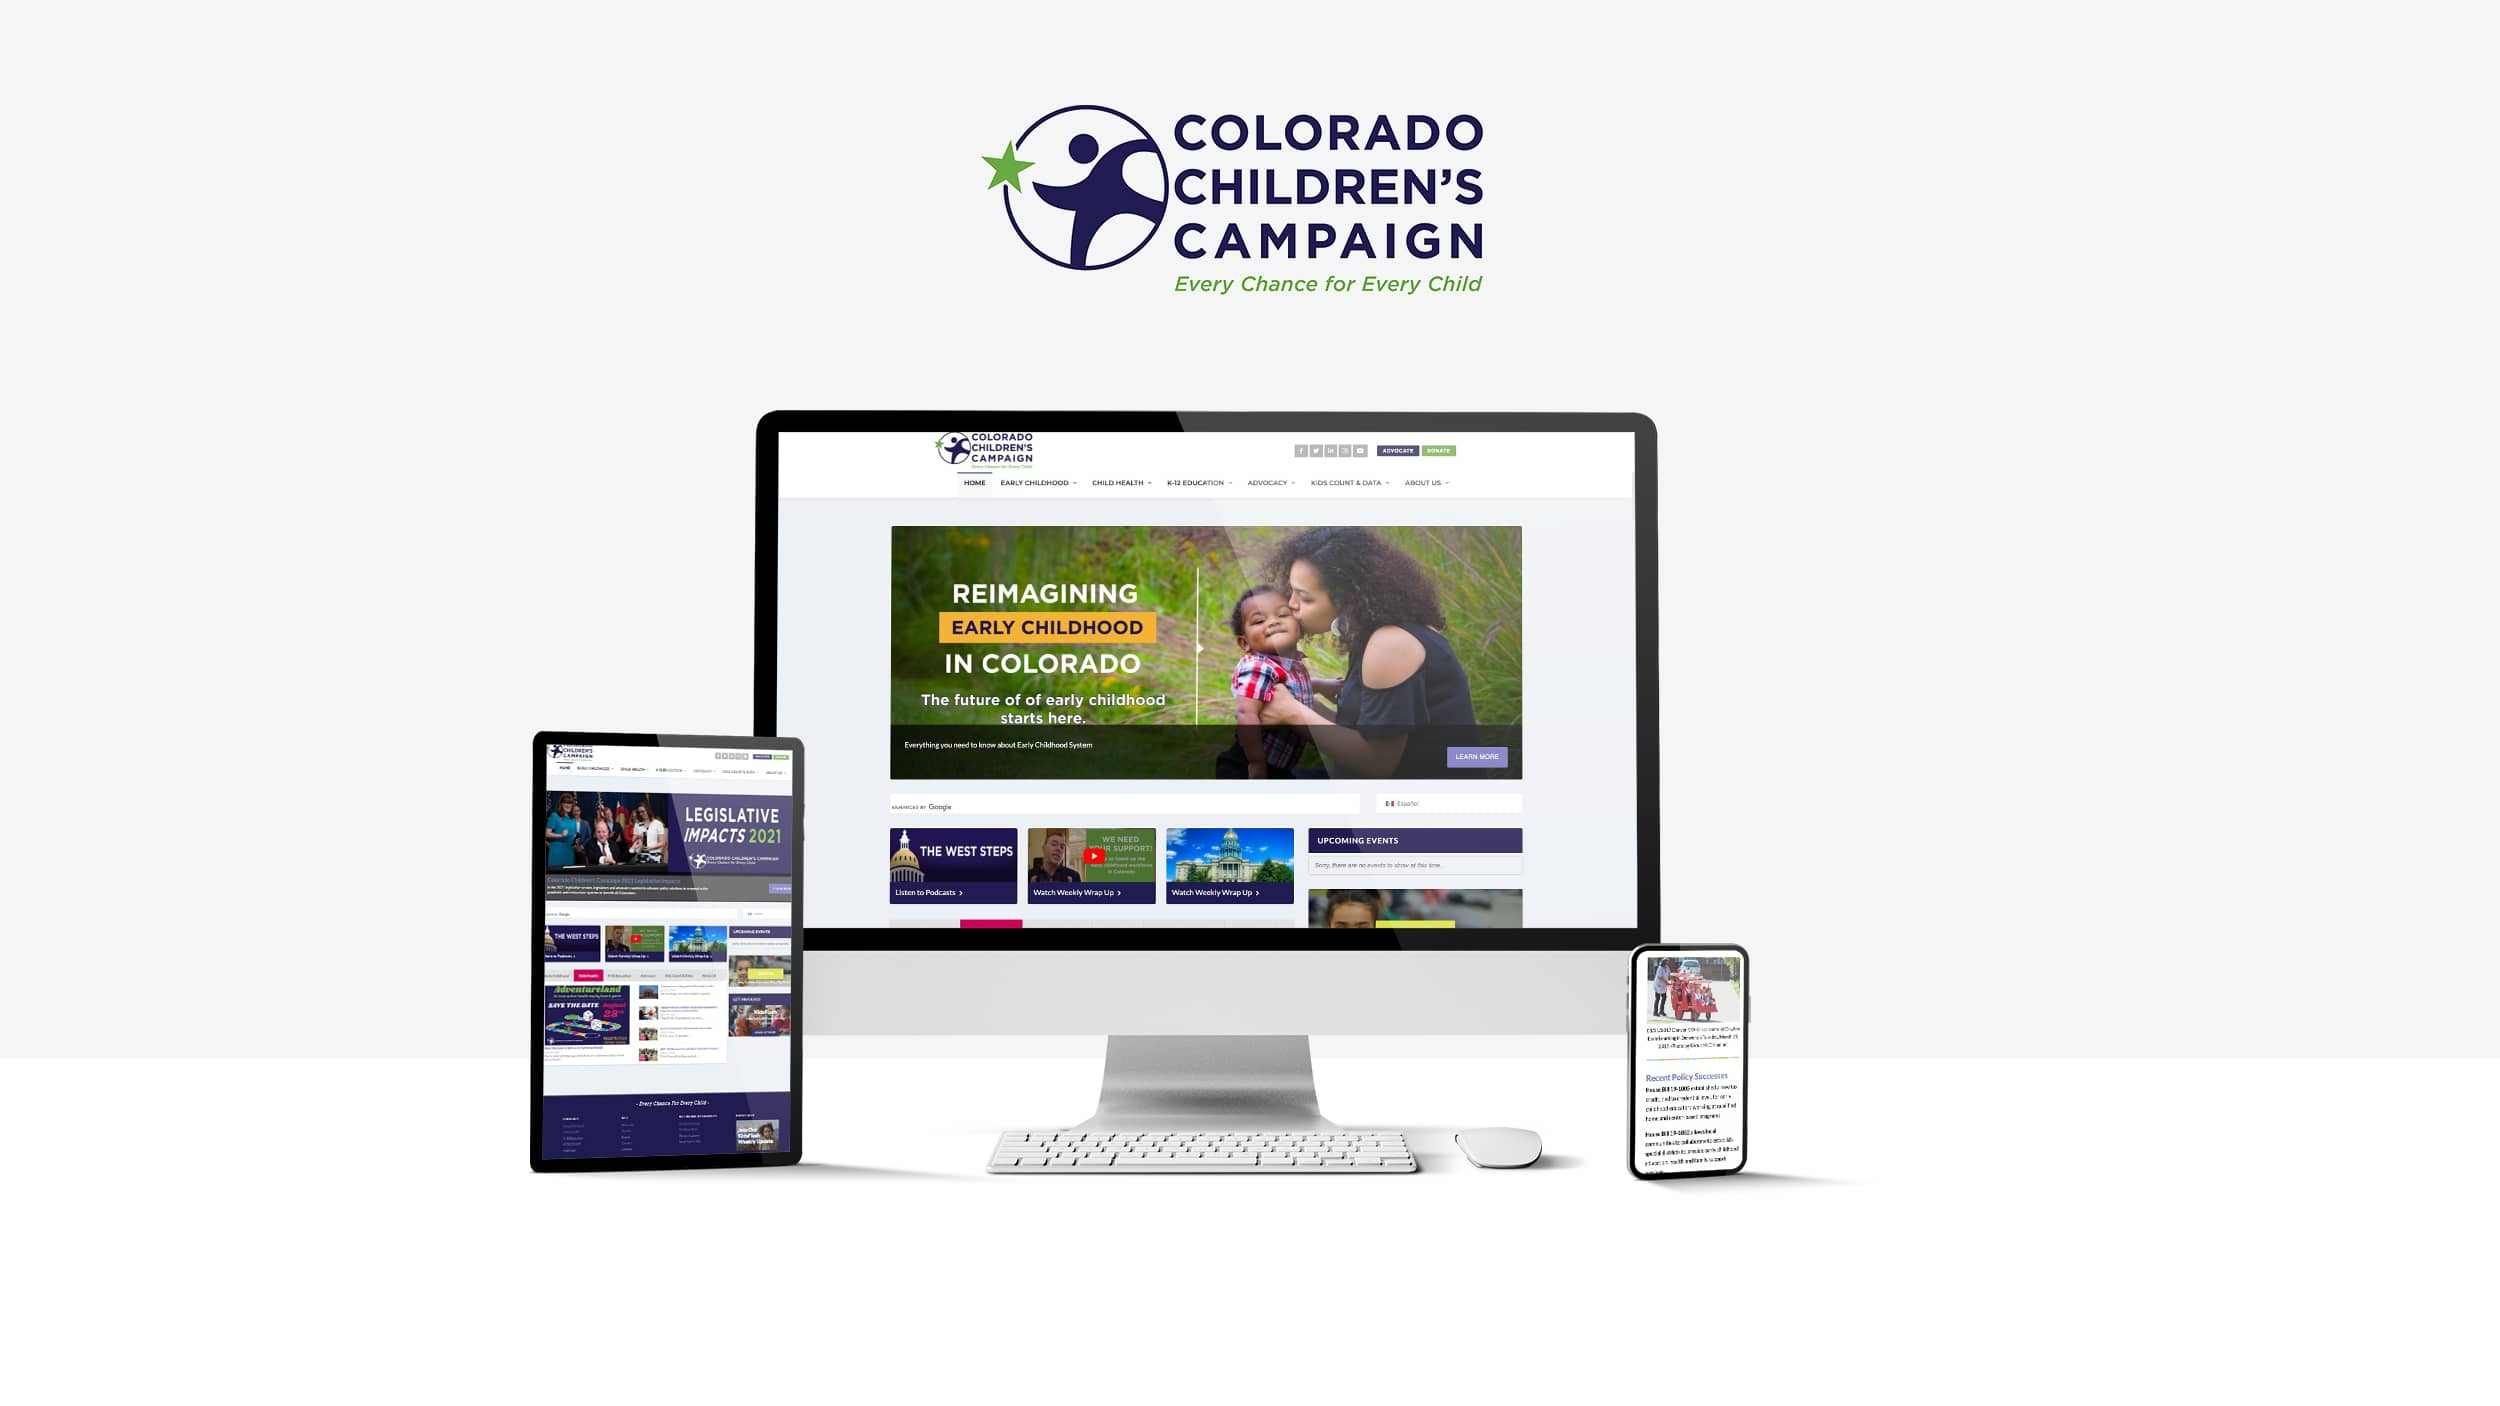 Colorado Children's Campaign website on all device sizes